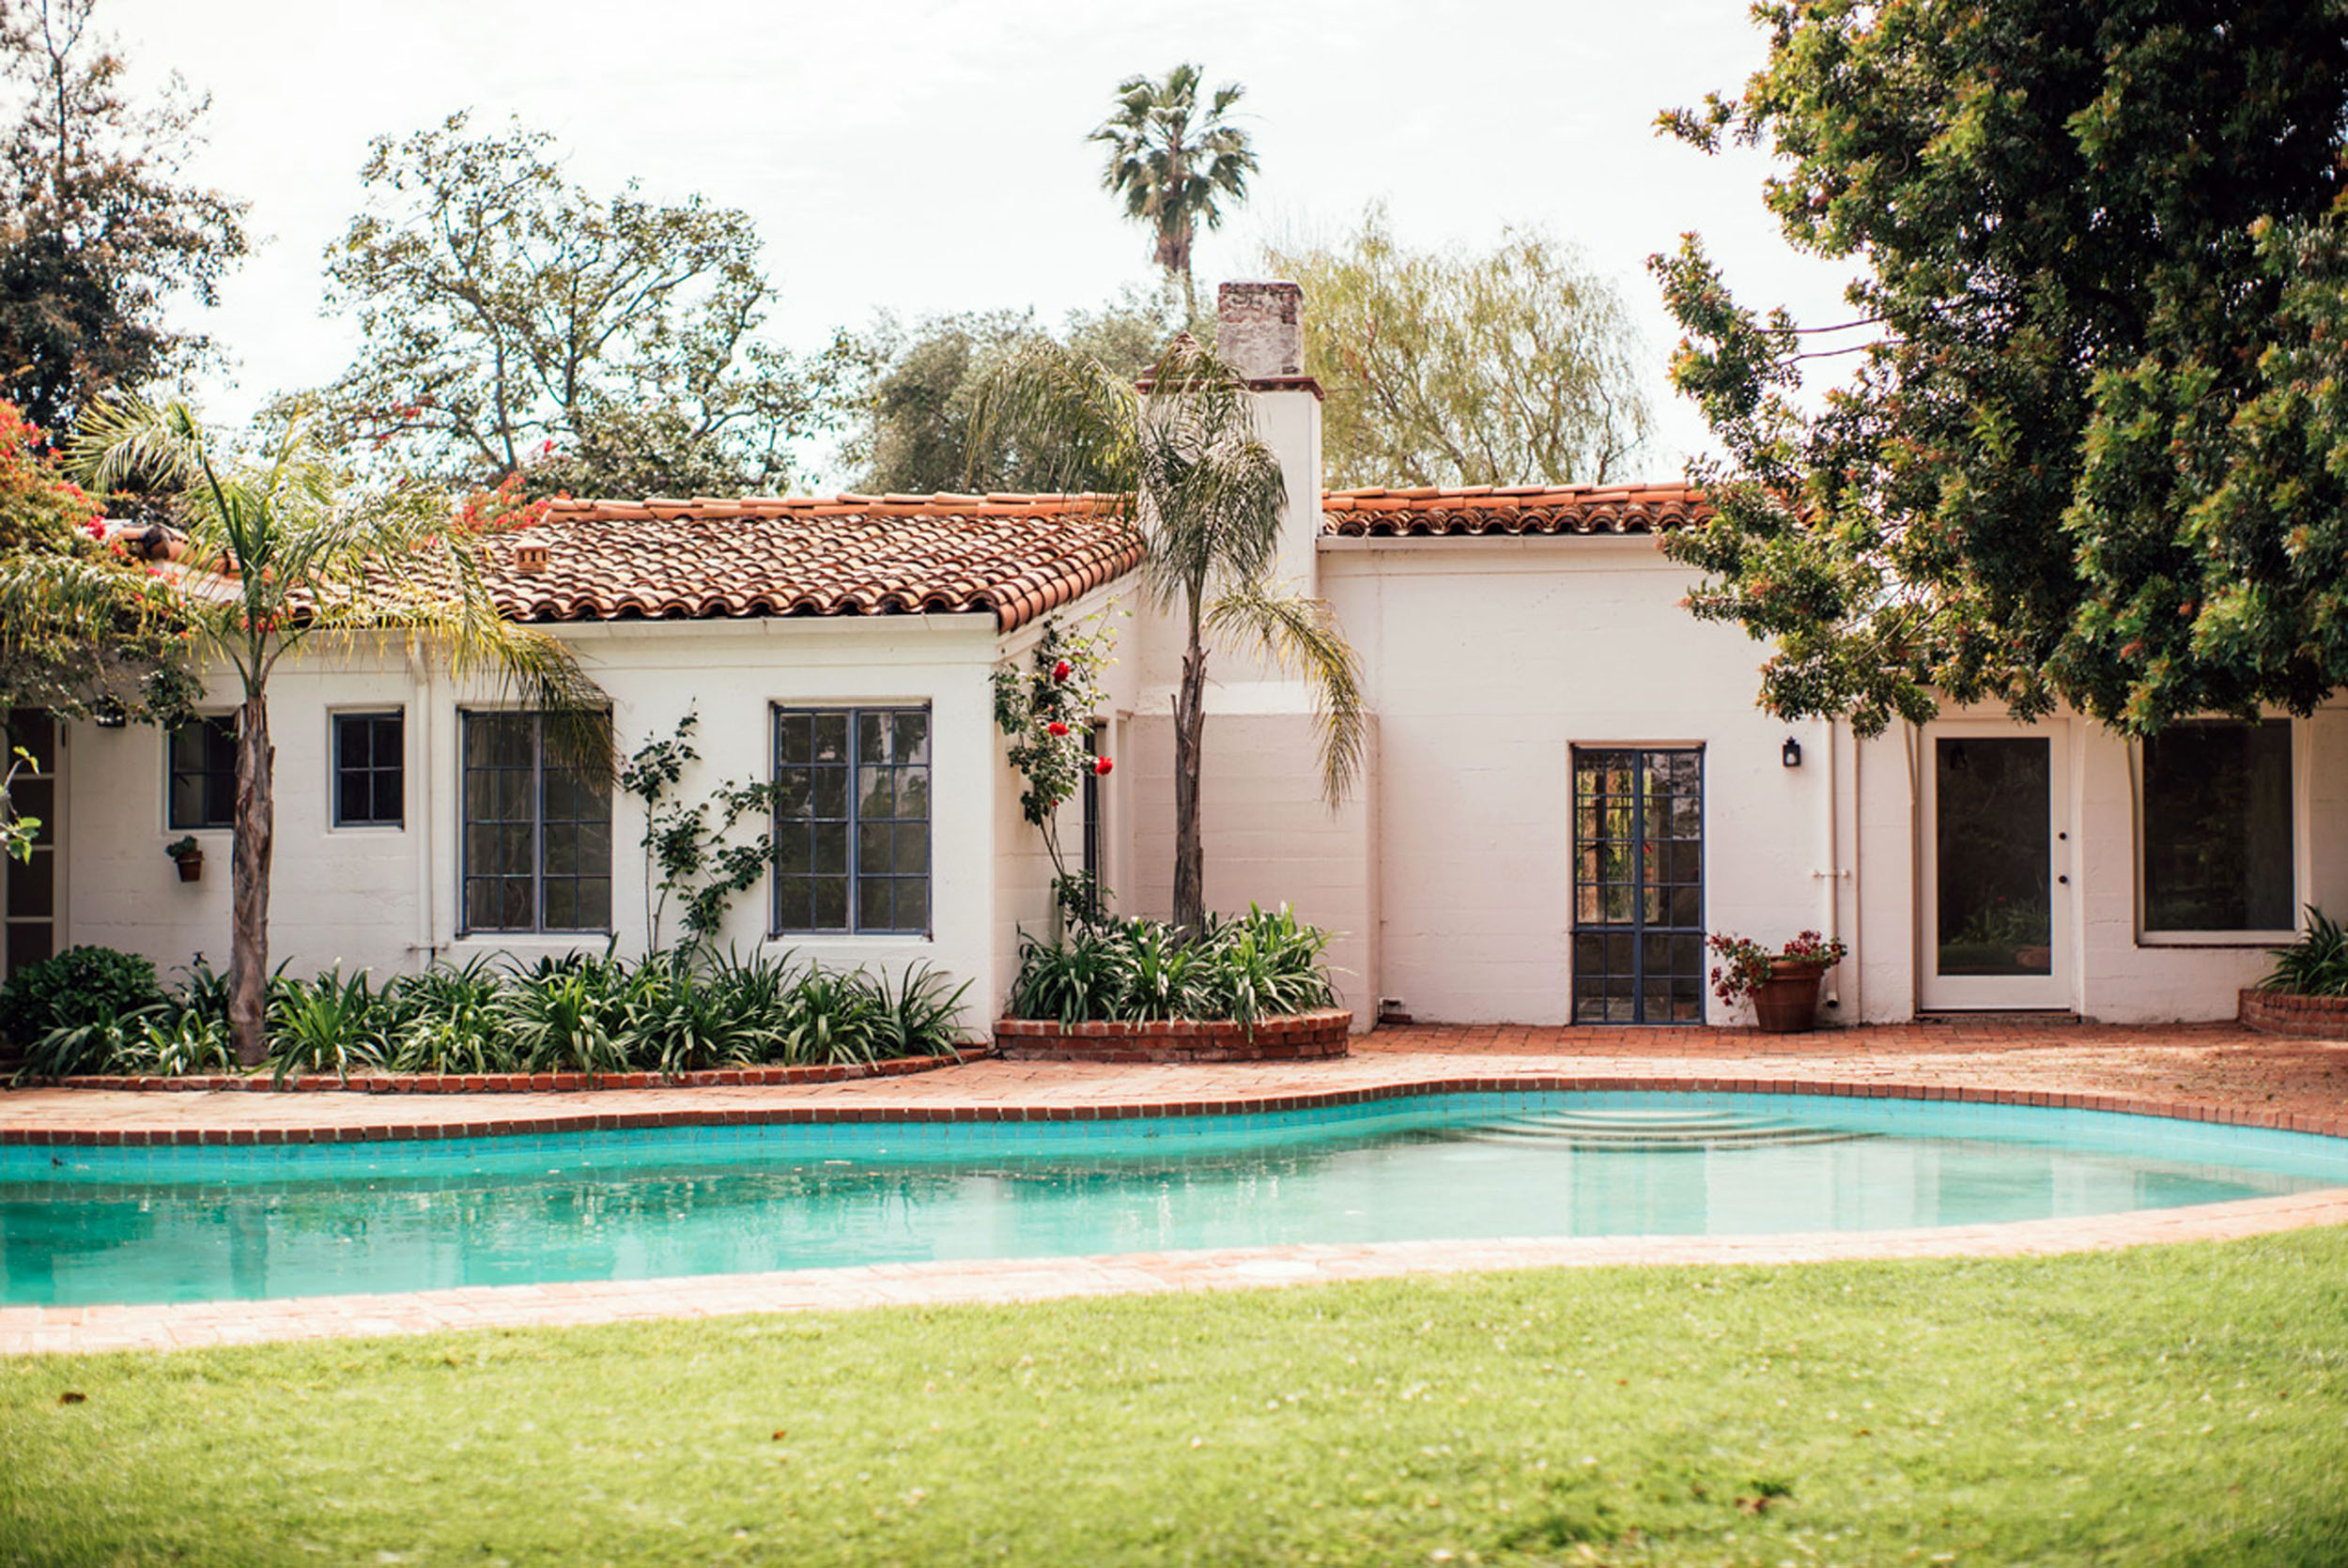 Marilyn Monroe's home in Brentwood, Los Angeles, sold